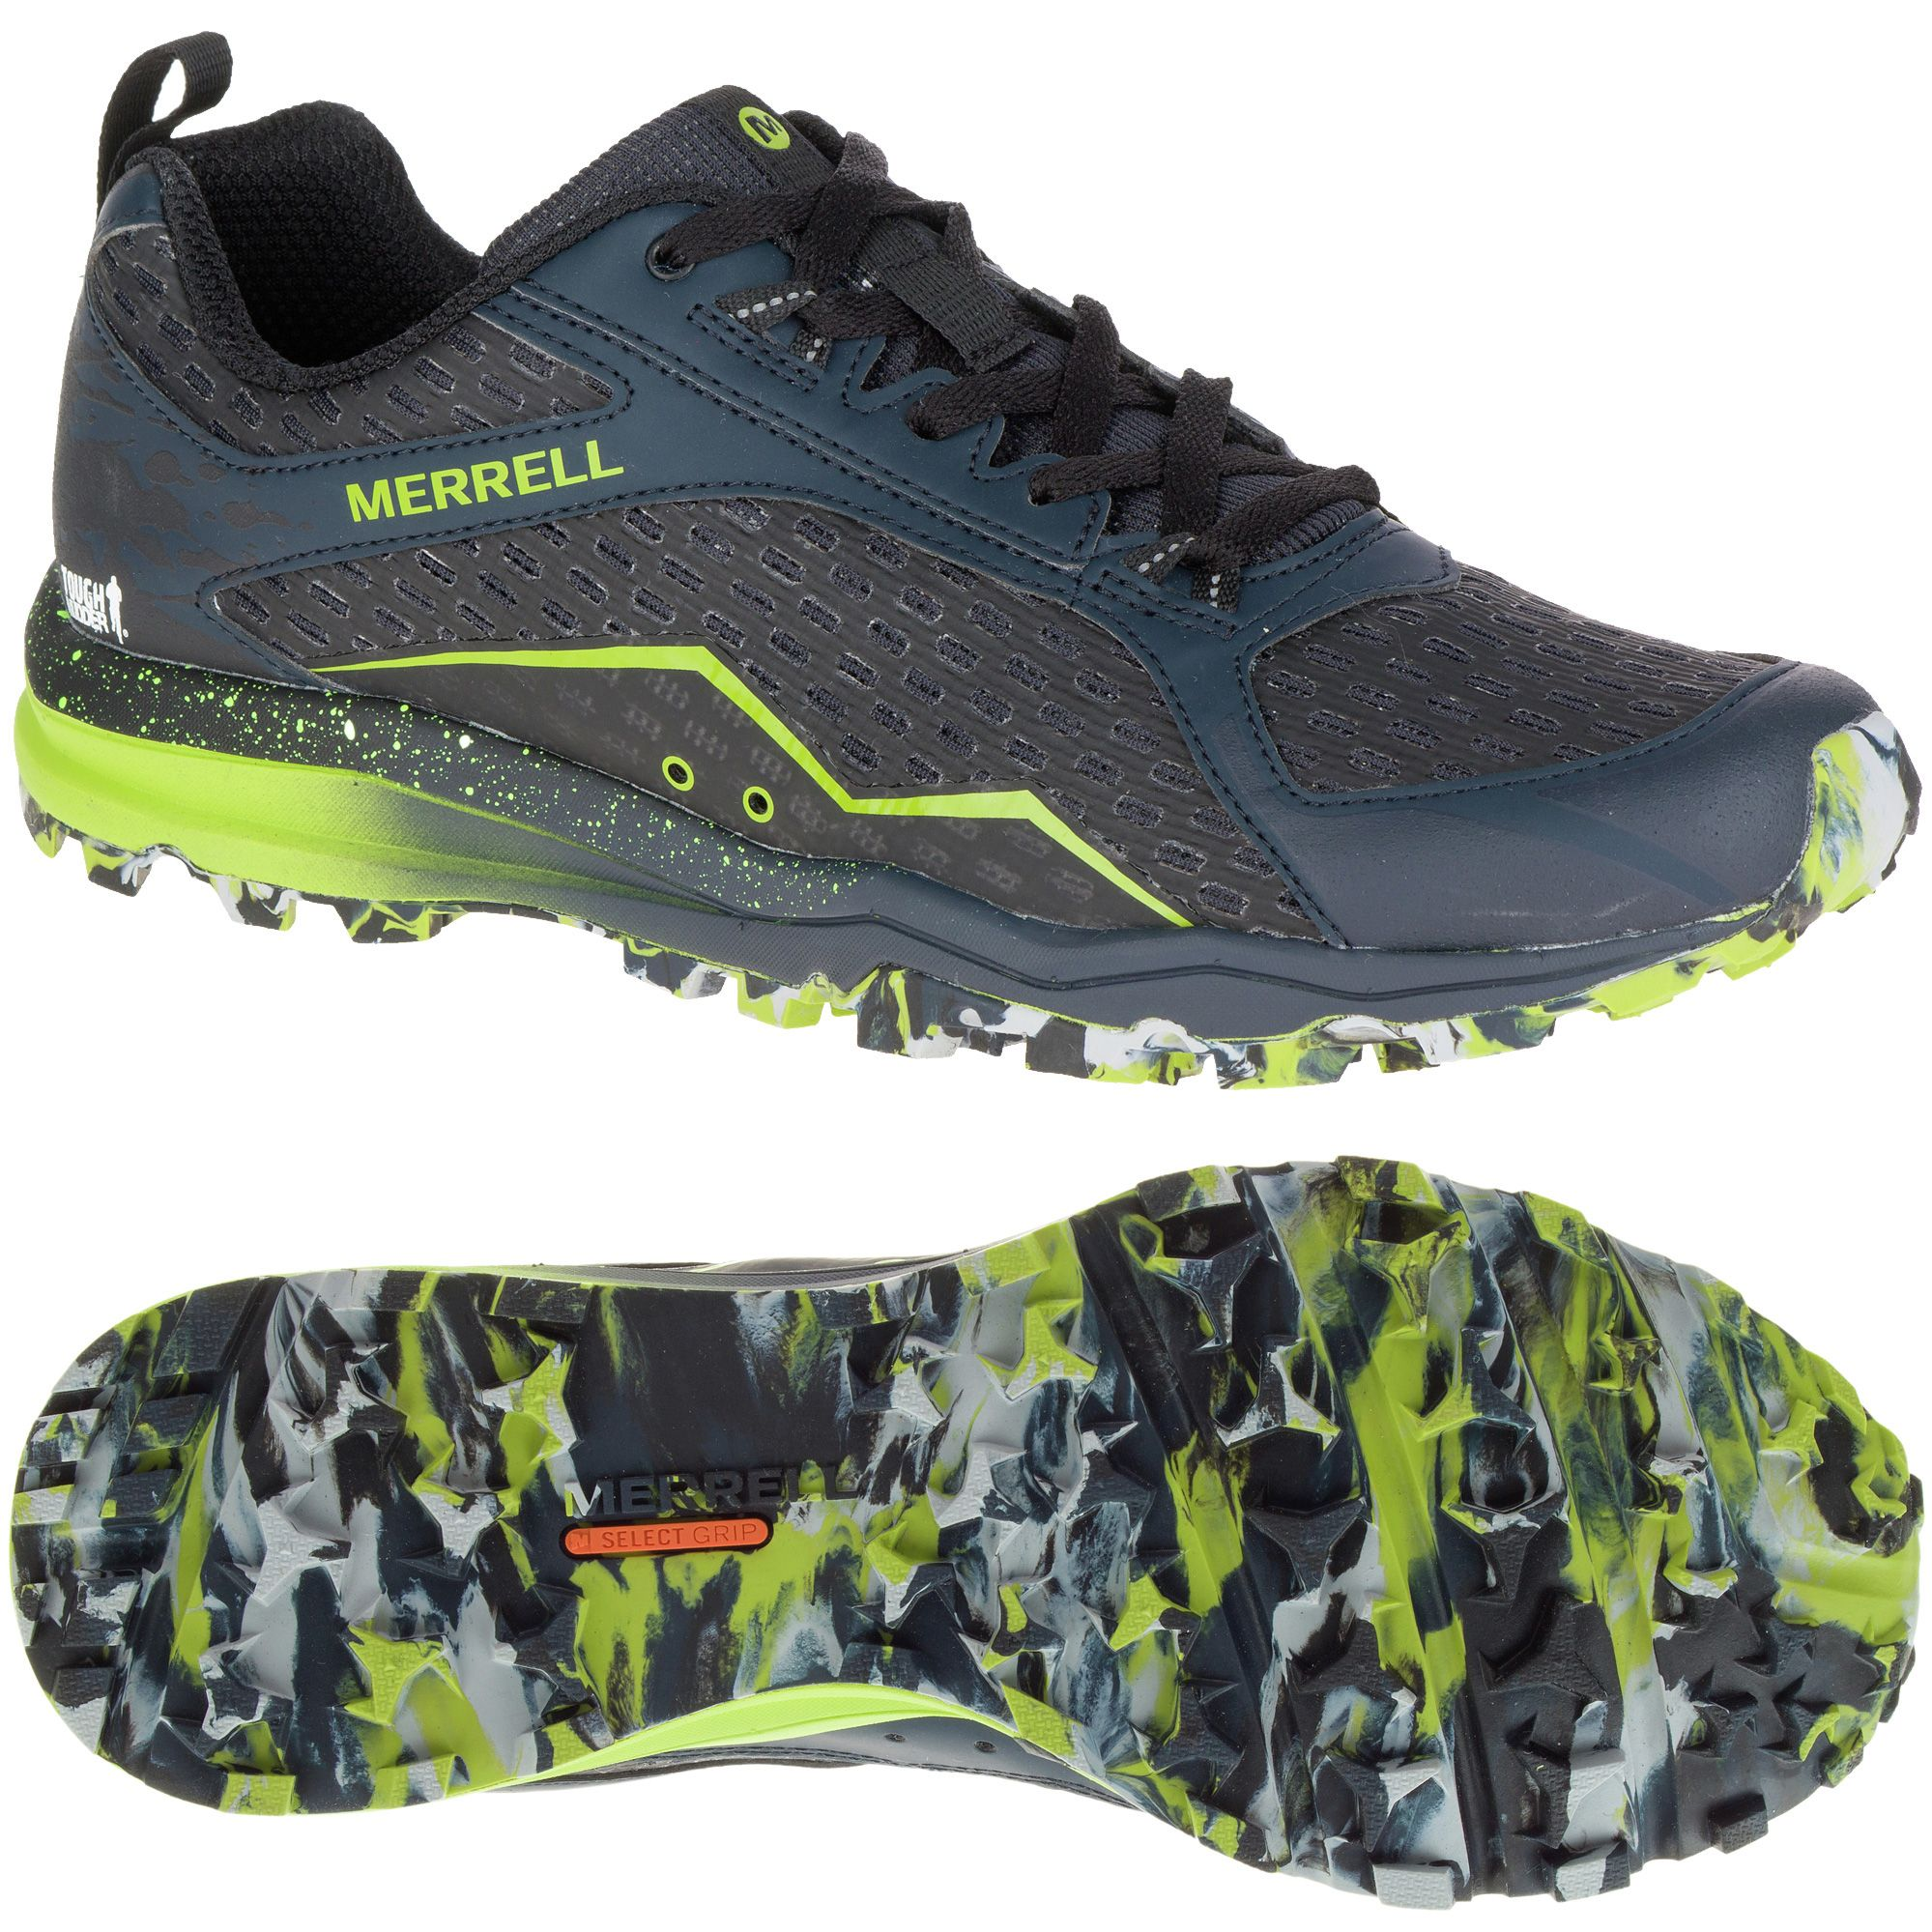 Merrell All Out Crush Mens Running Shoes - Sweatband.com